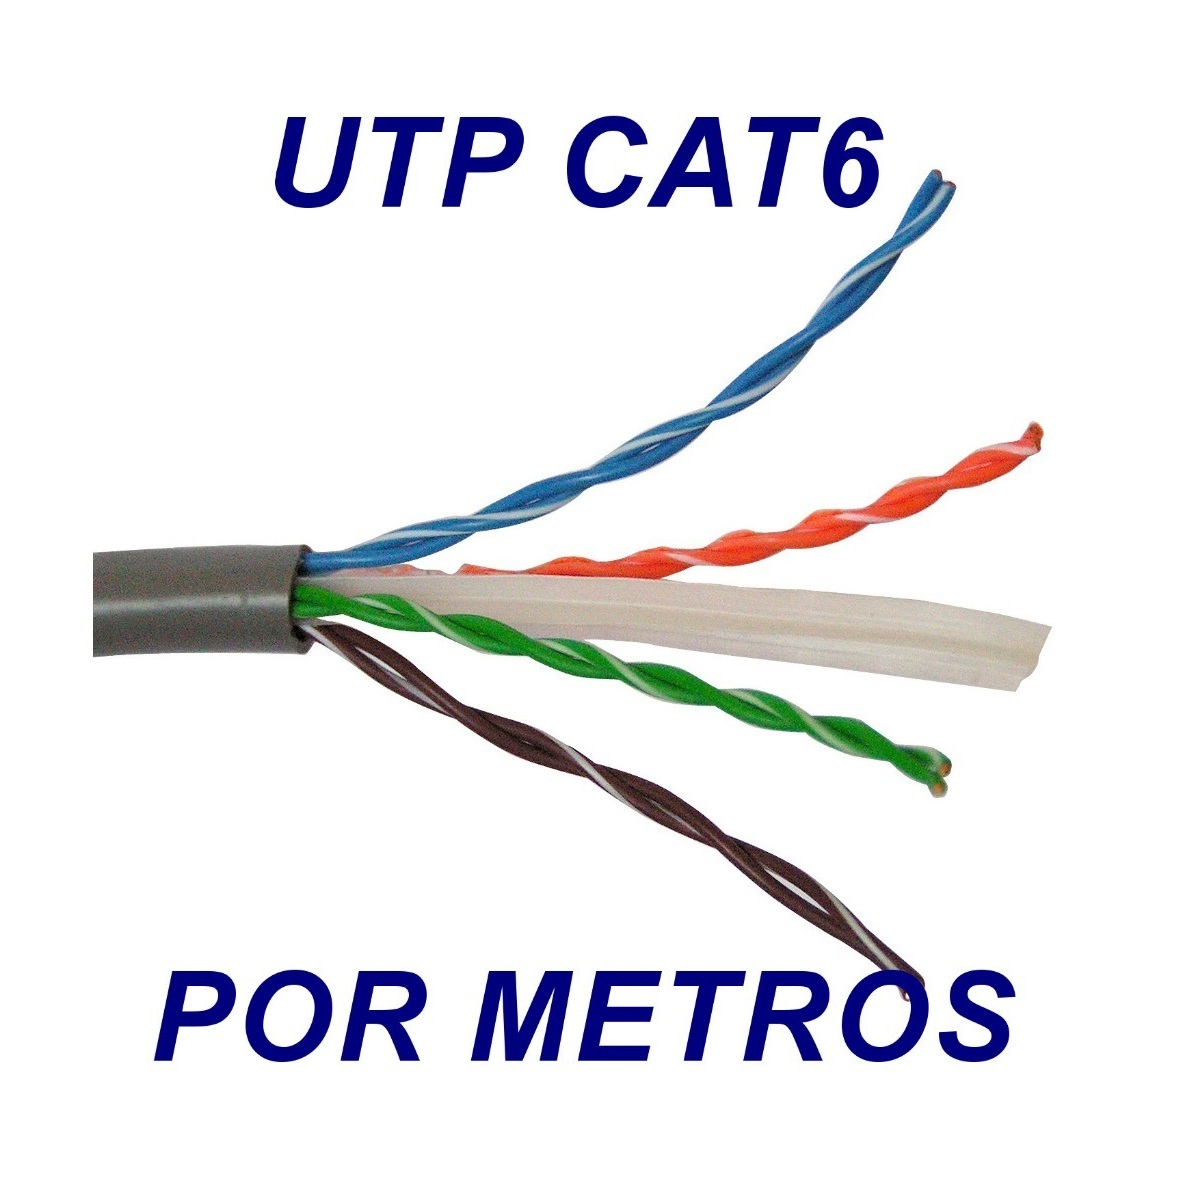 Cable UTP CAT 6 red de 4 Pares Gris por metros NEXXT